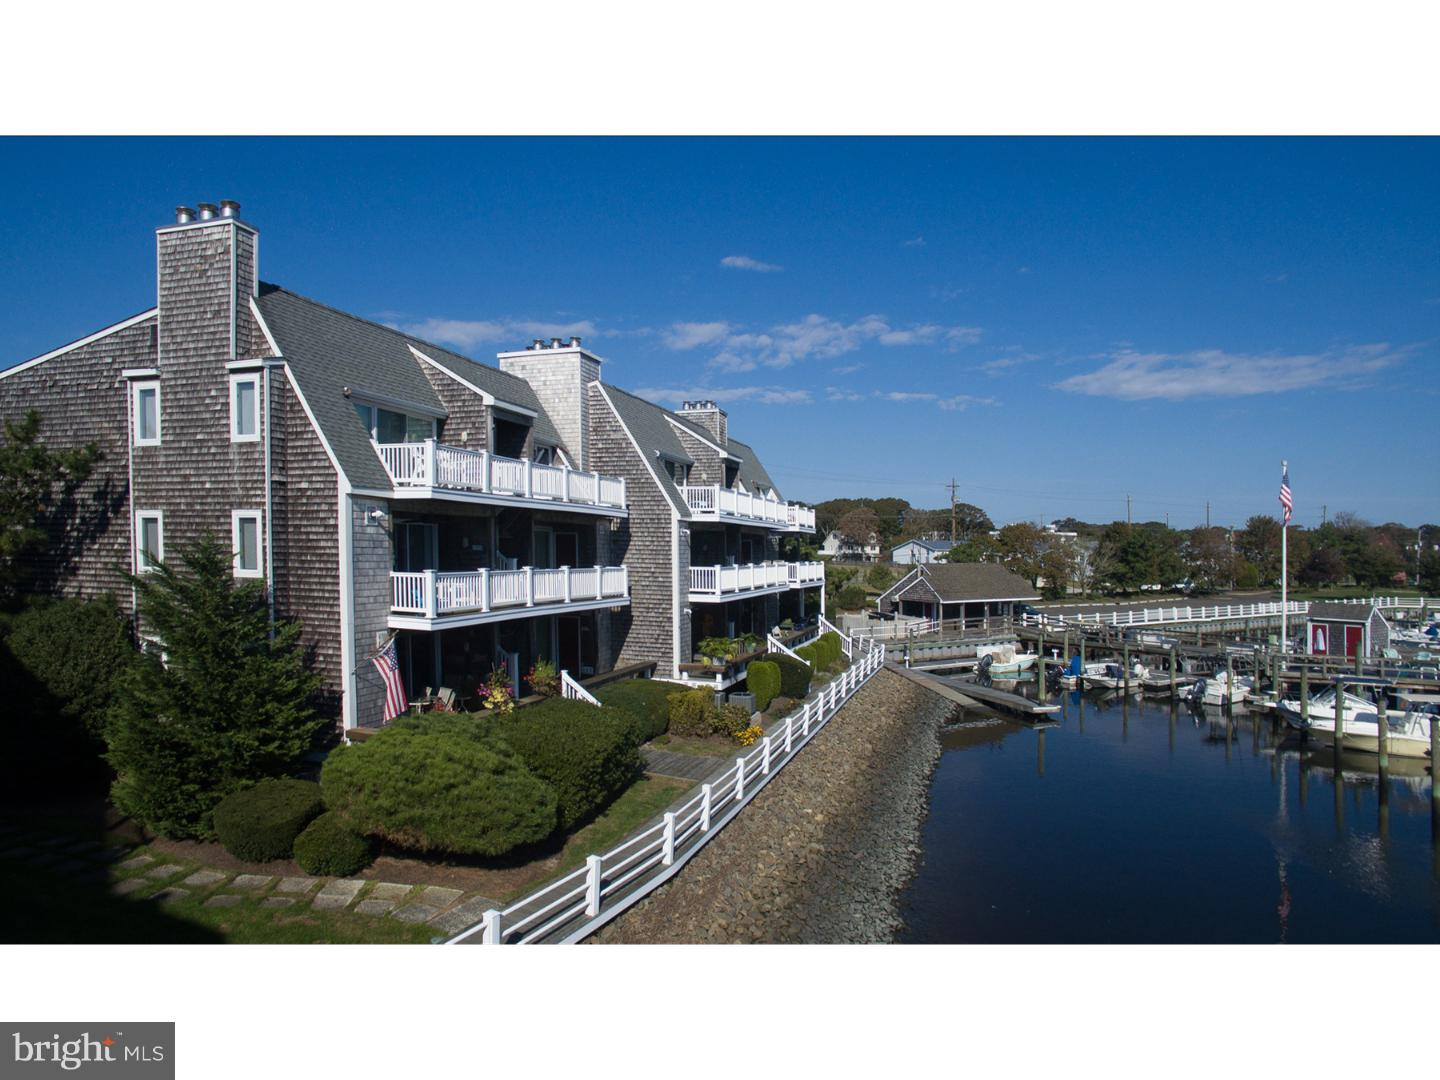 110 HARBOUR COVE, SOMERS POINT, NJ 08244